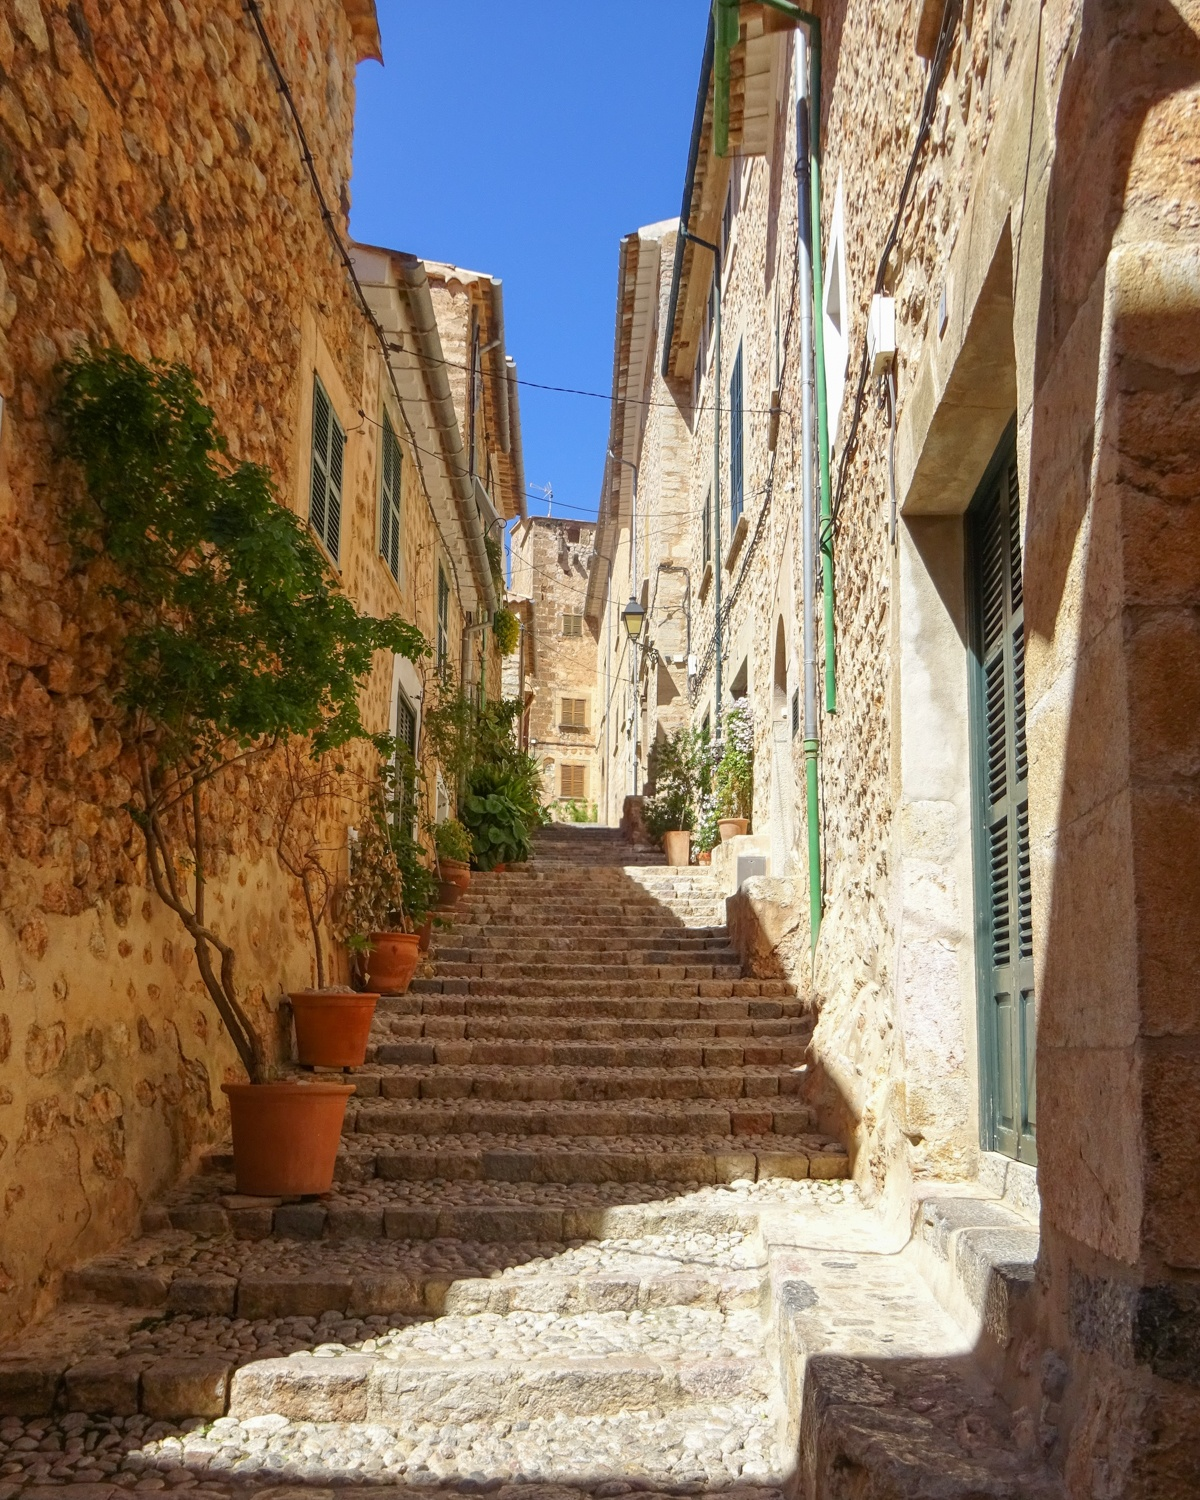 Fornalutx in Mallorca Photo: Gabrielle M Reinhardt Pixabay